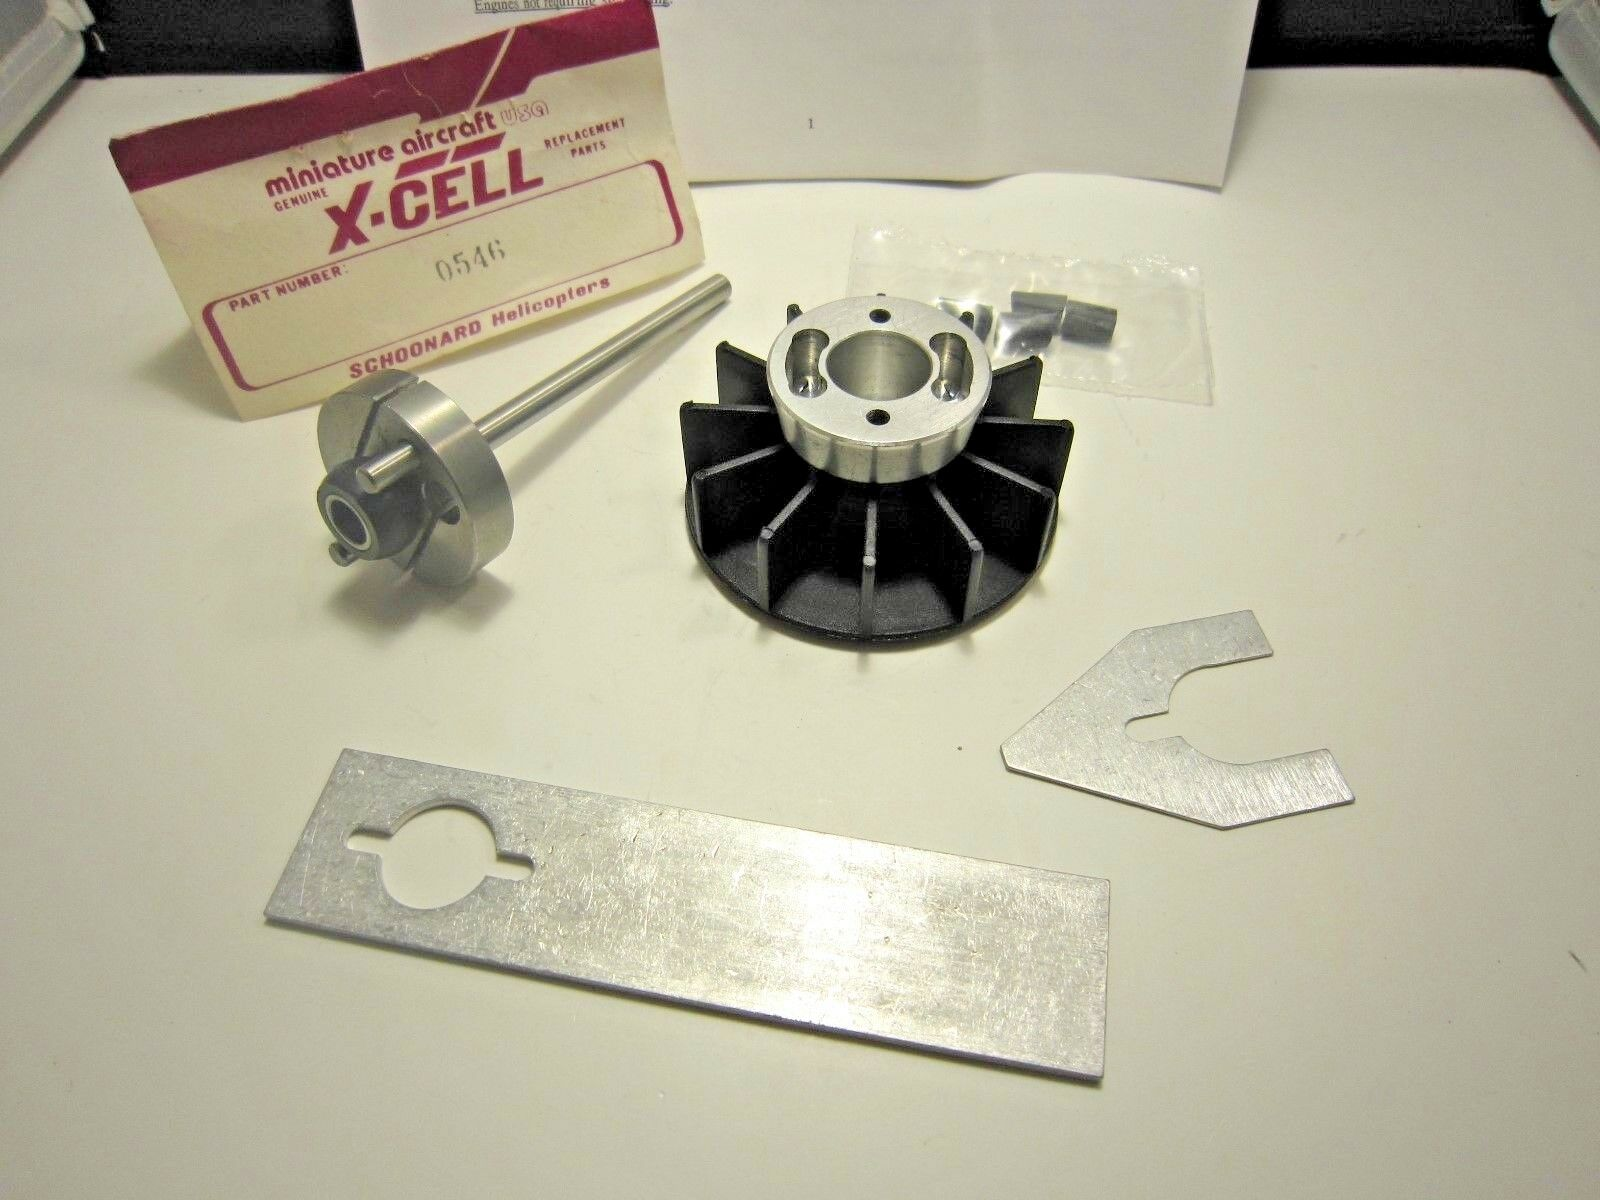 X cell MA 0546 Self aligning Dampened Clutch Clutch Clutch system for 50 60 e PRO Series NIP 45593b